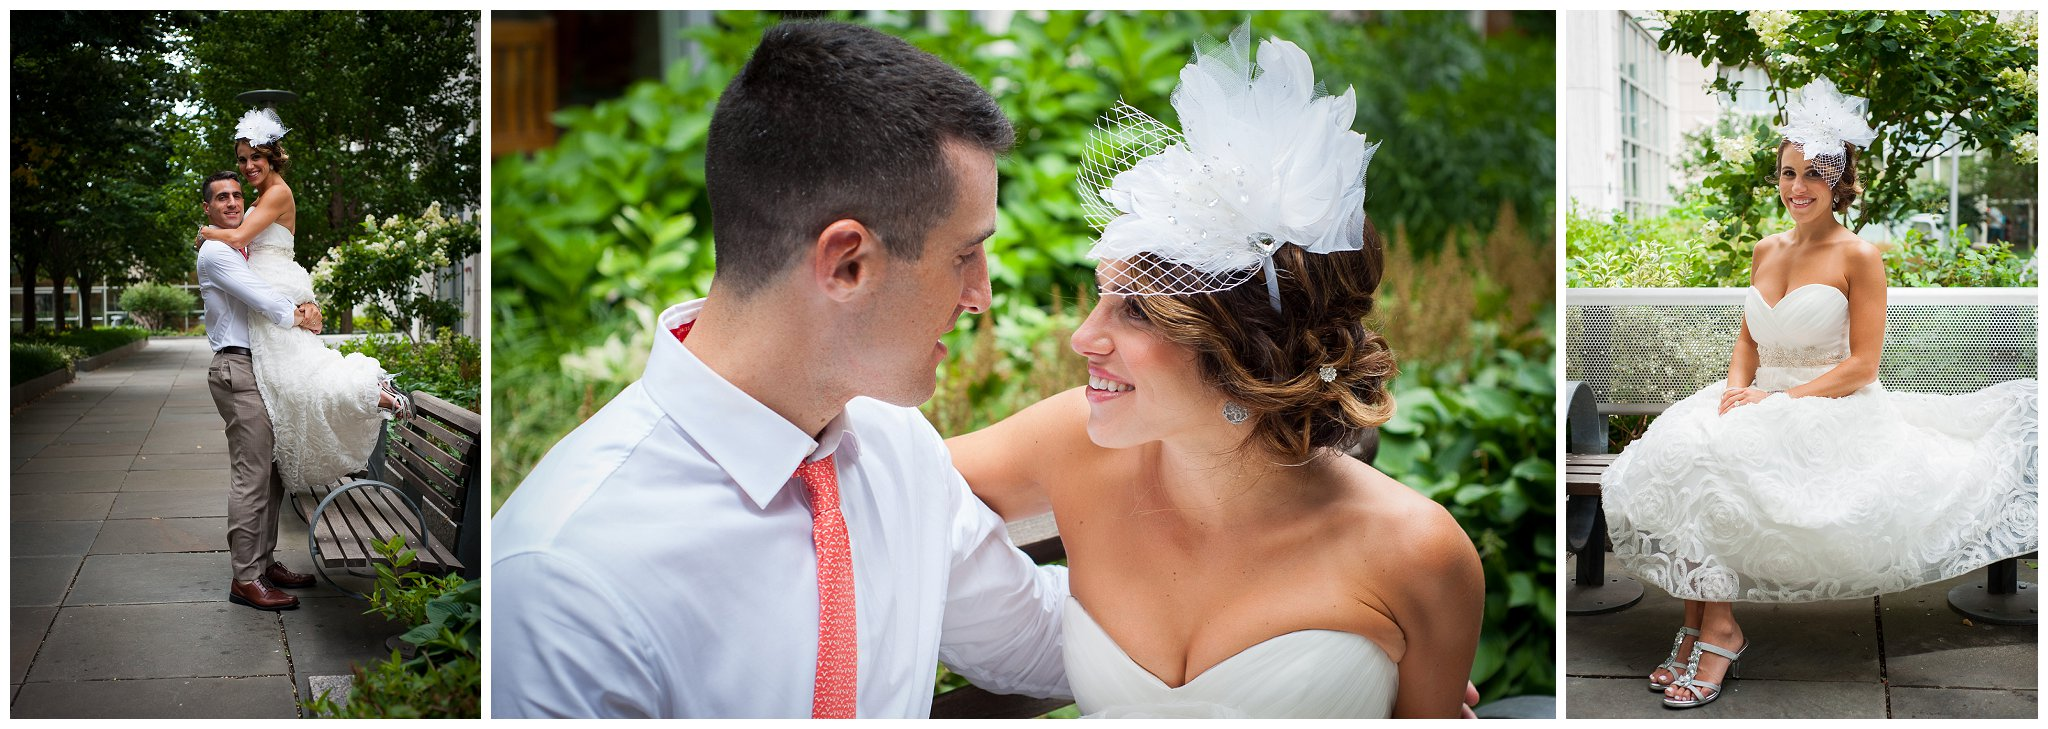 Garden Bridal Portraits Boston MA wedding photographer